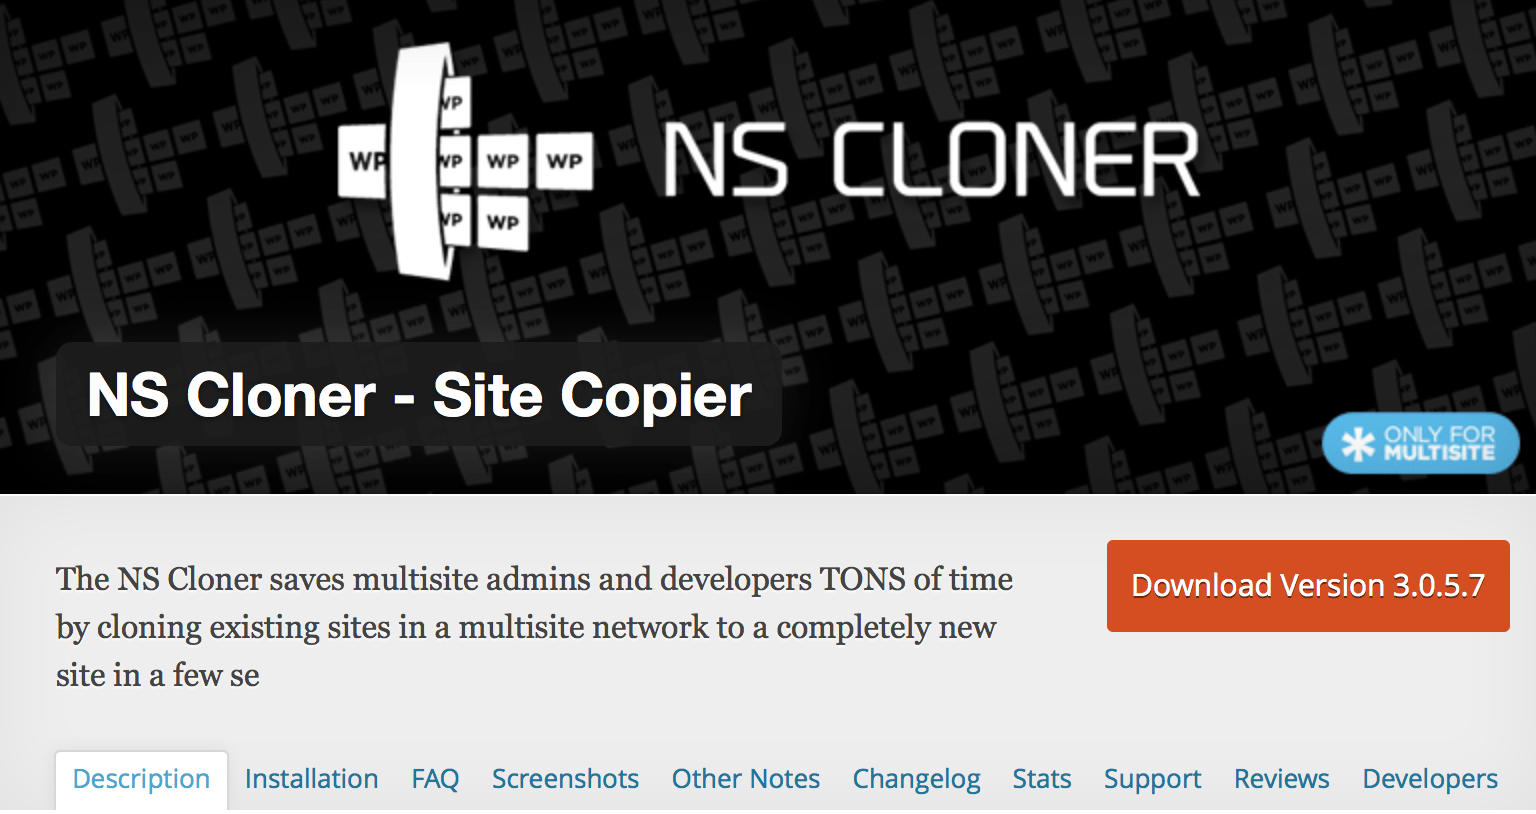 NS_Cloner_-_Site_Copier_—_WordPress_Plugins